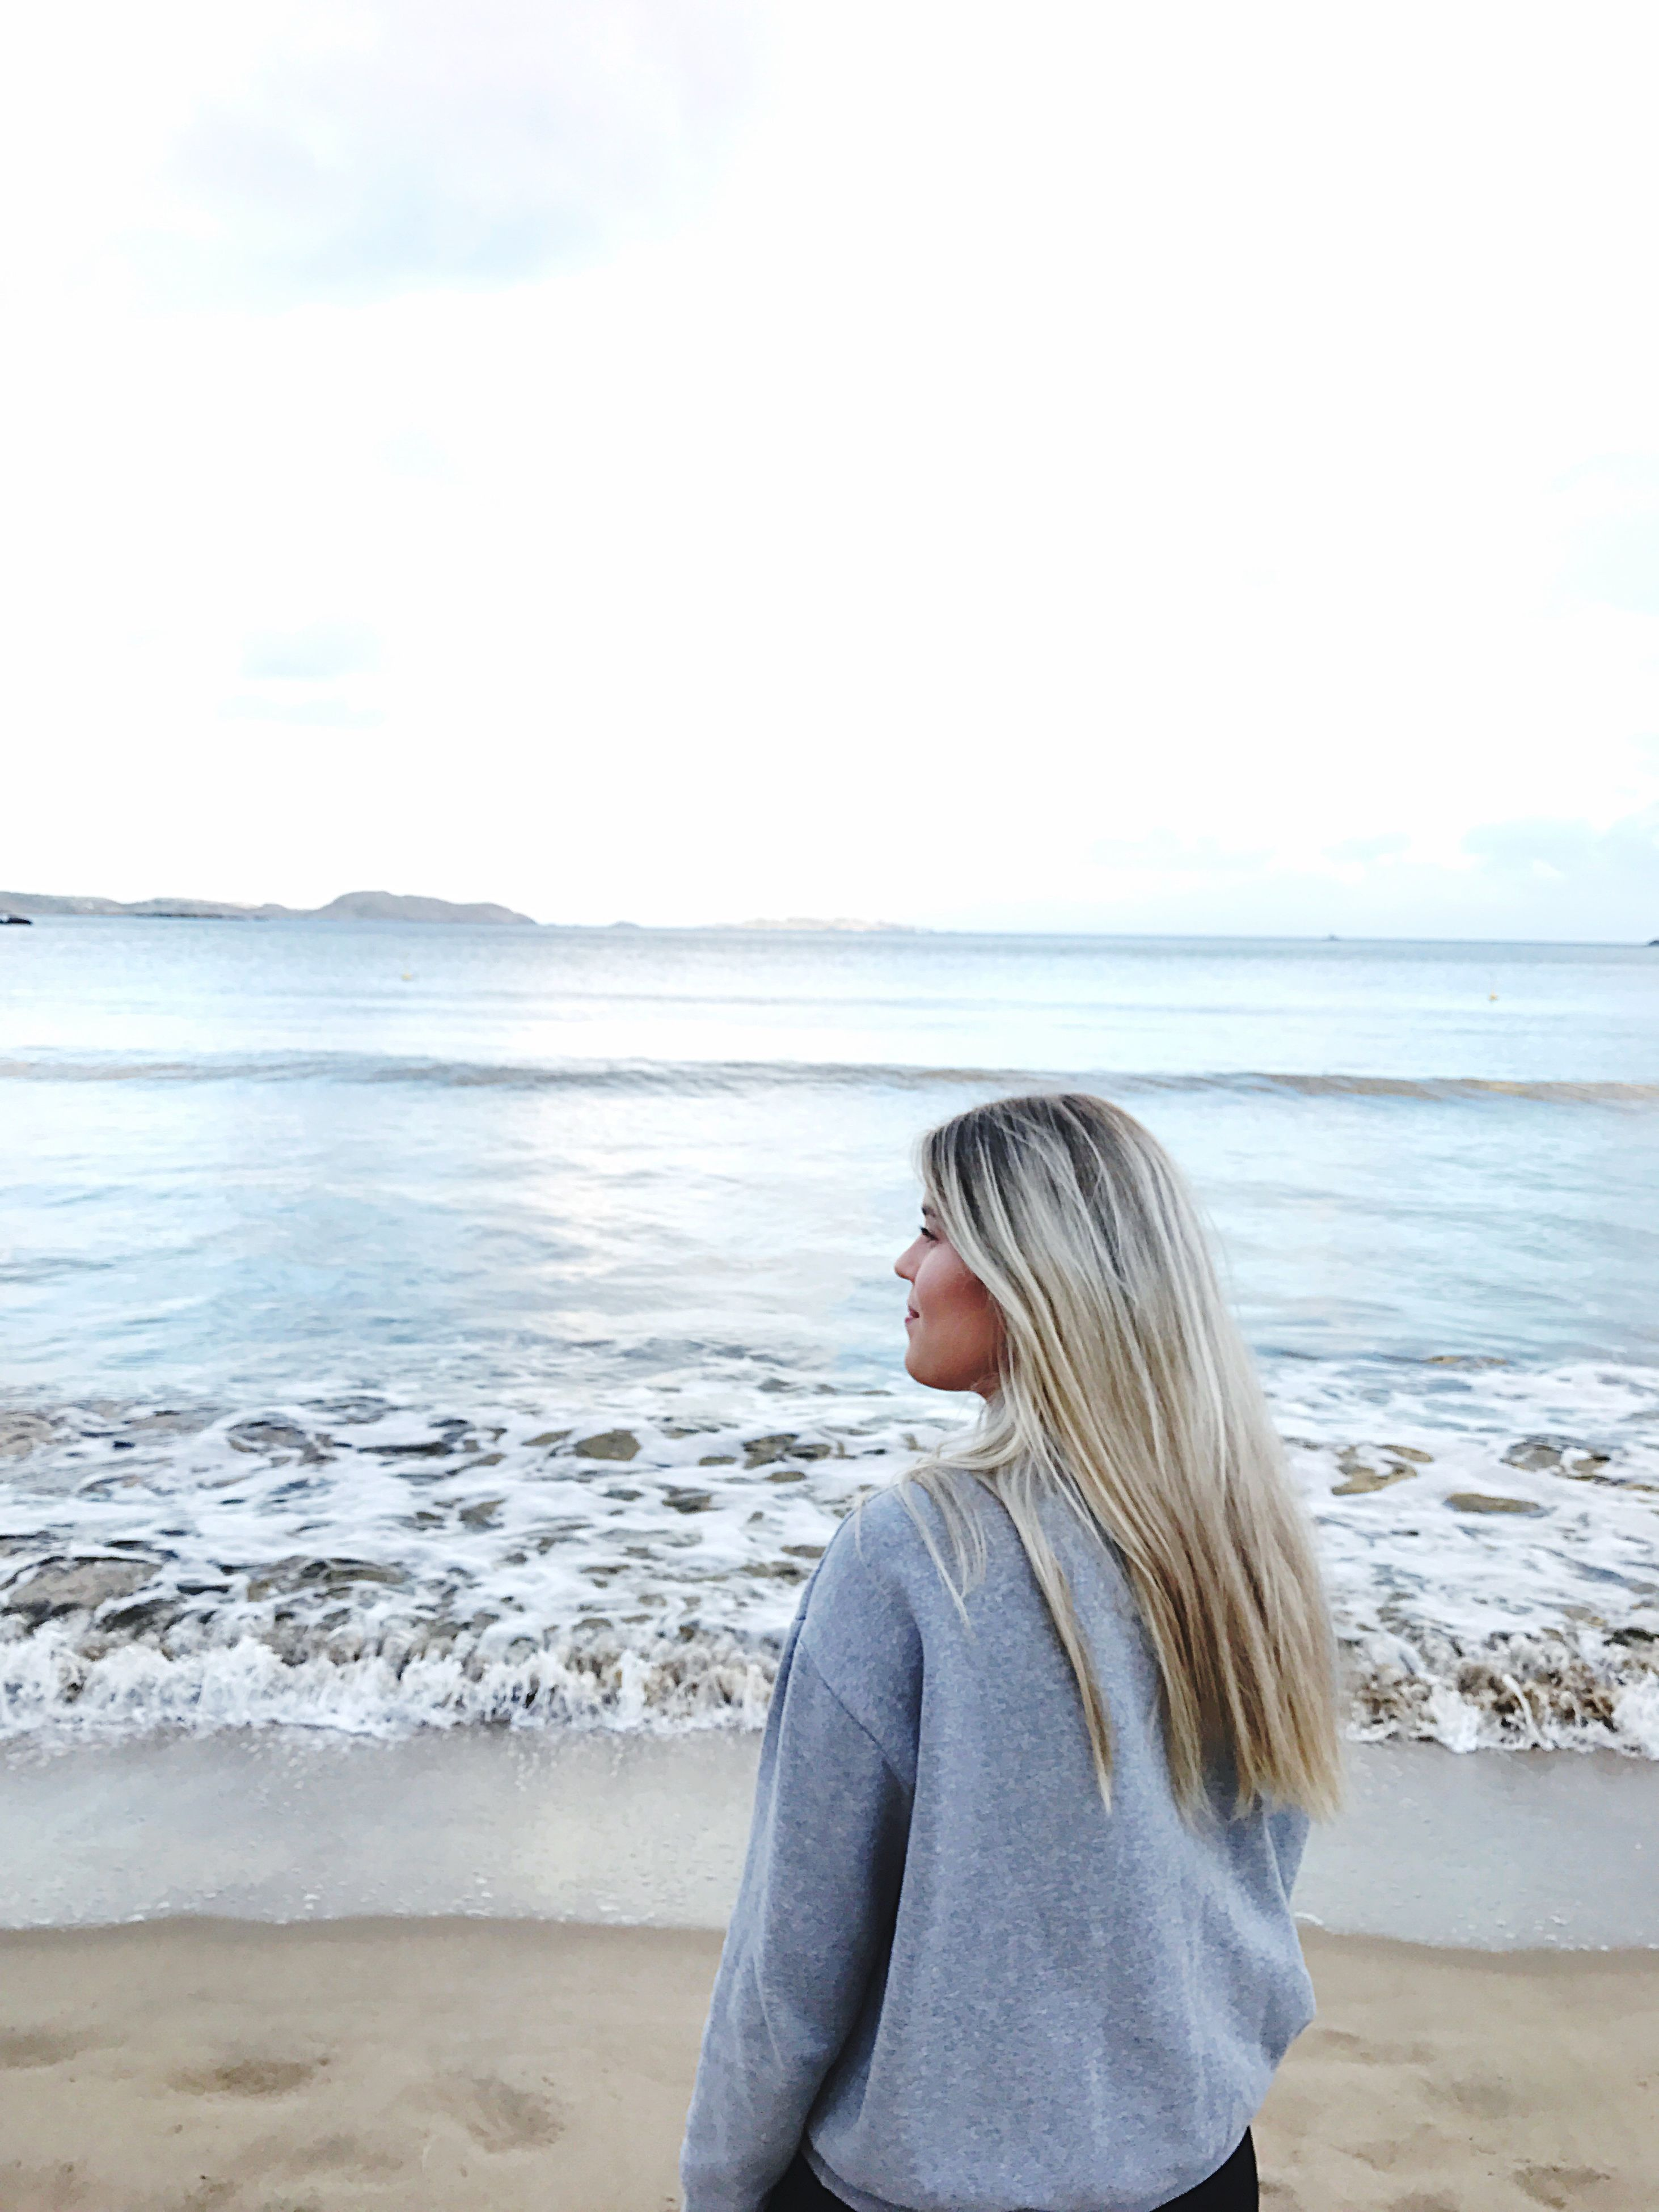 sea, horizon over water, beach, water, one person, sky, nature, blond hair, sand, standing, outdoors, wave, scenics, real people, day, beauty in nature, young adult, people